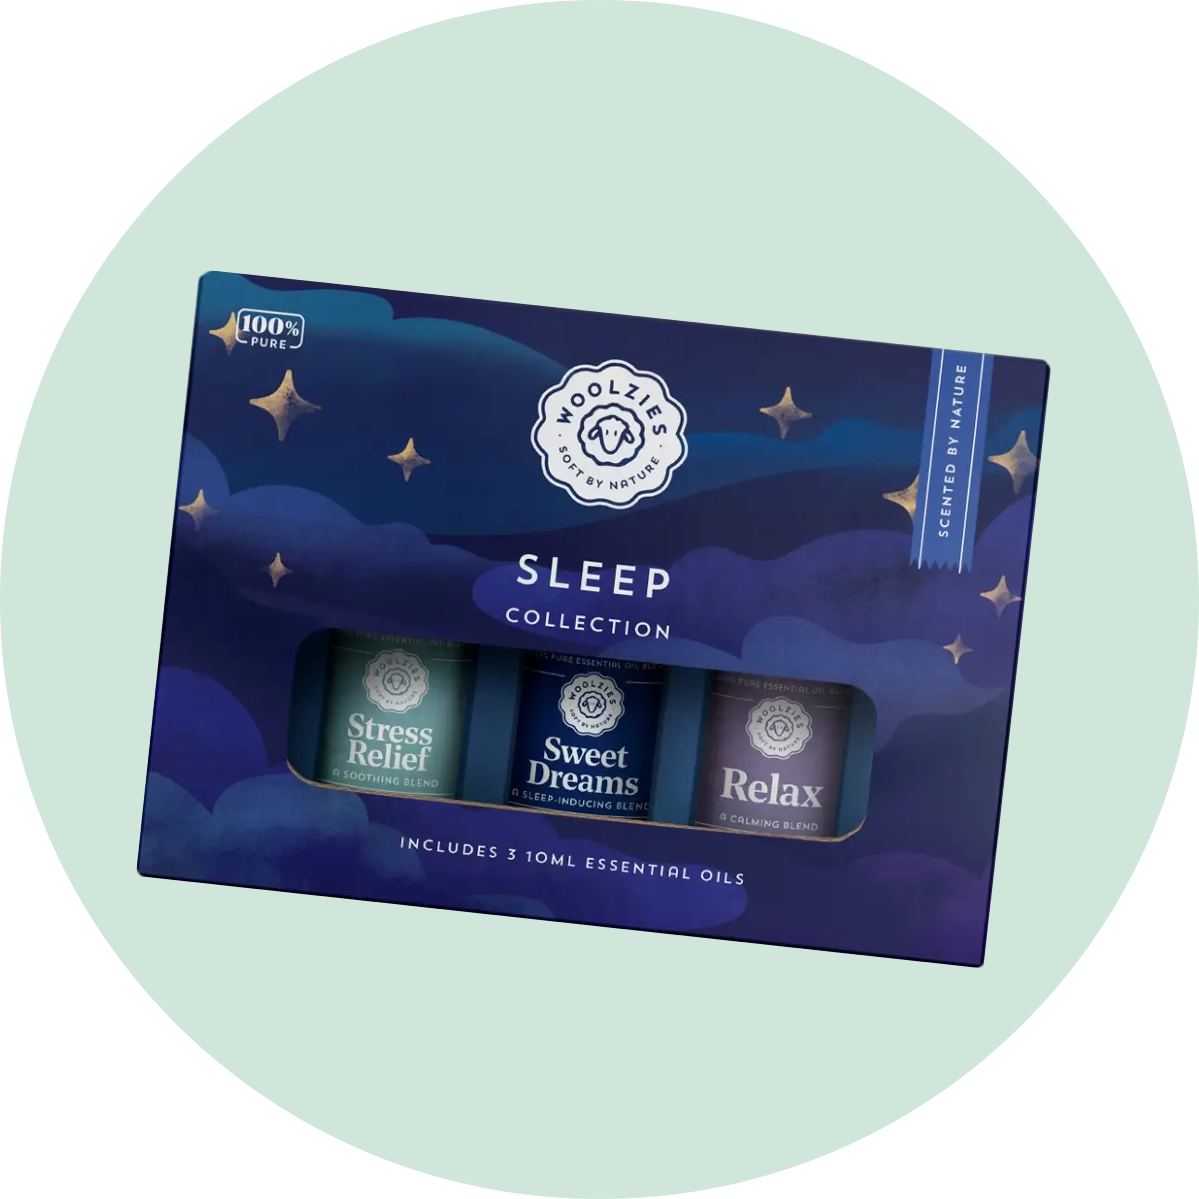 Woolzie's Deep Sleep Essential Oil Collection